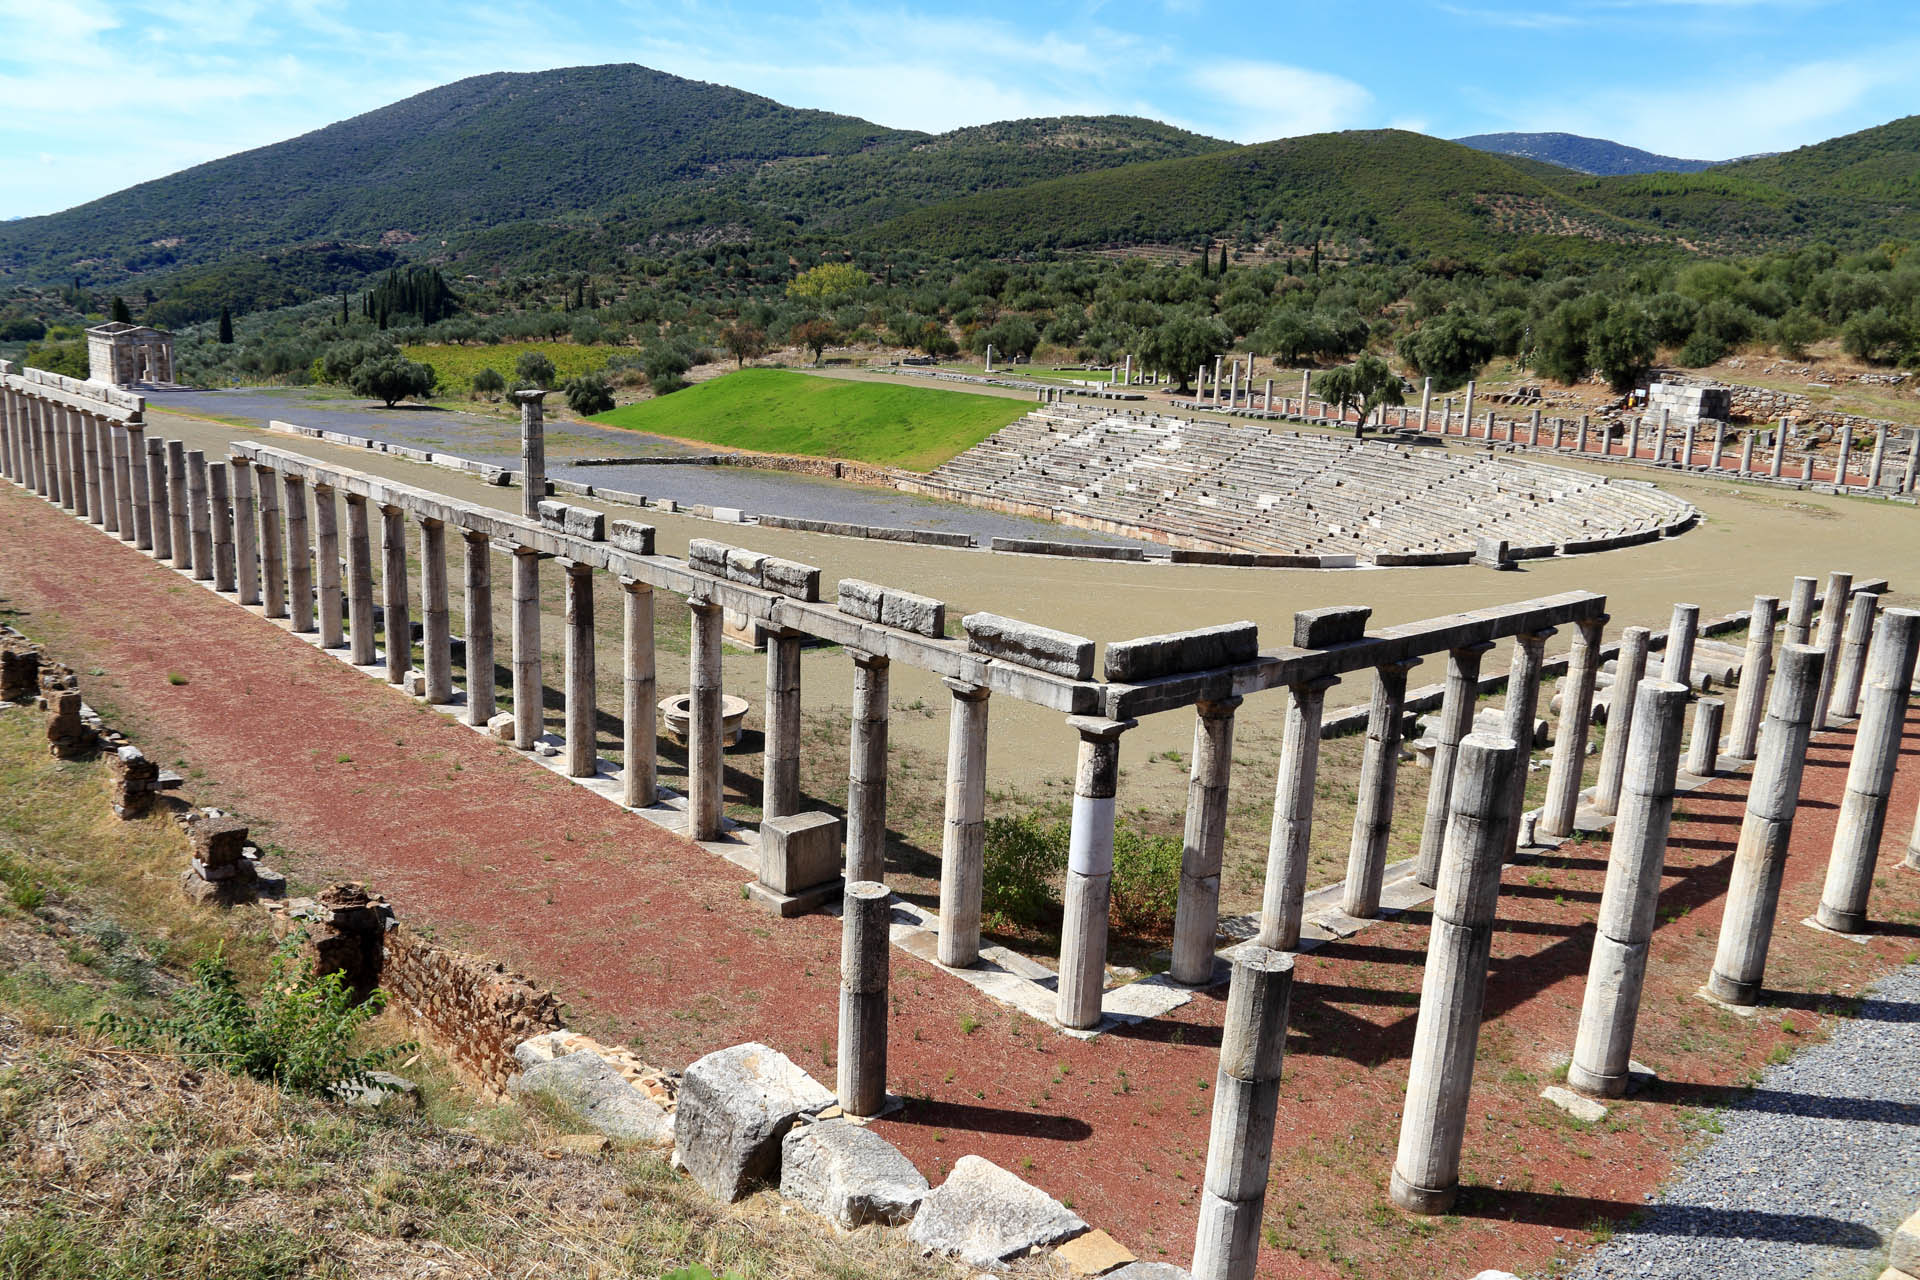 Messene, Greece - Monterrasol private tours to Messene, Greece. Travel agency offers custom private car tours to see Messene in Greece. Order custom private tour to Messene with departure date on request.